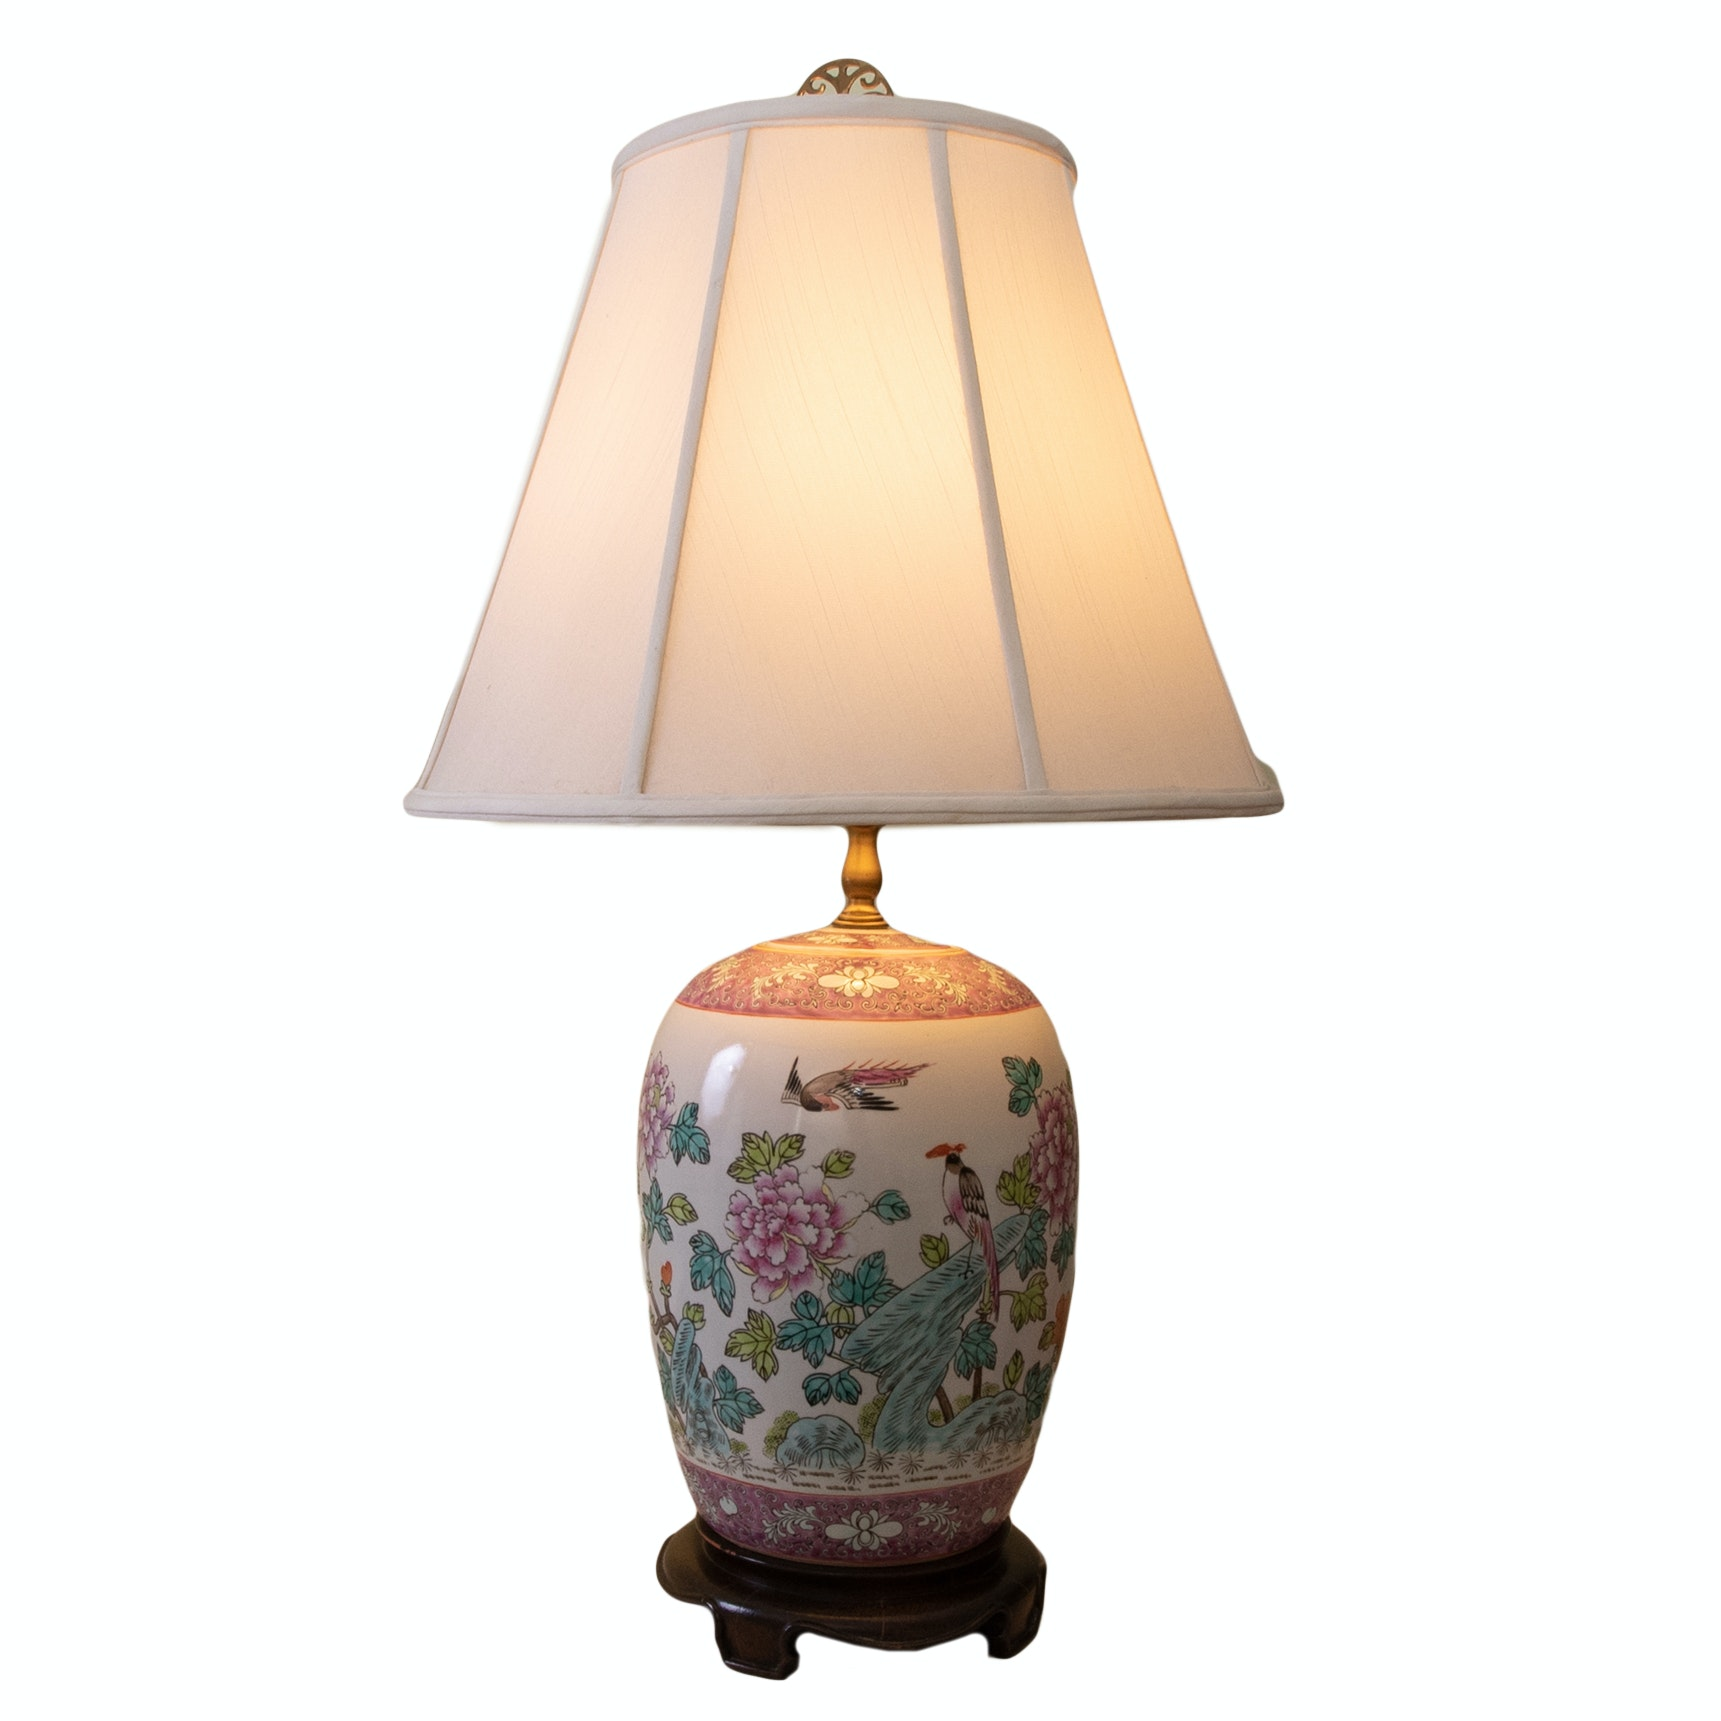 Chinese Ceramic Table Lamp by Monter Lite